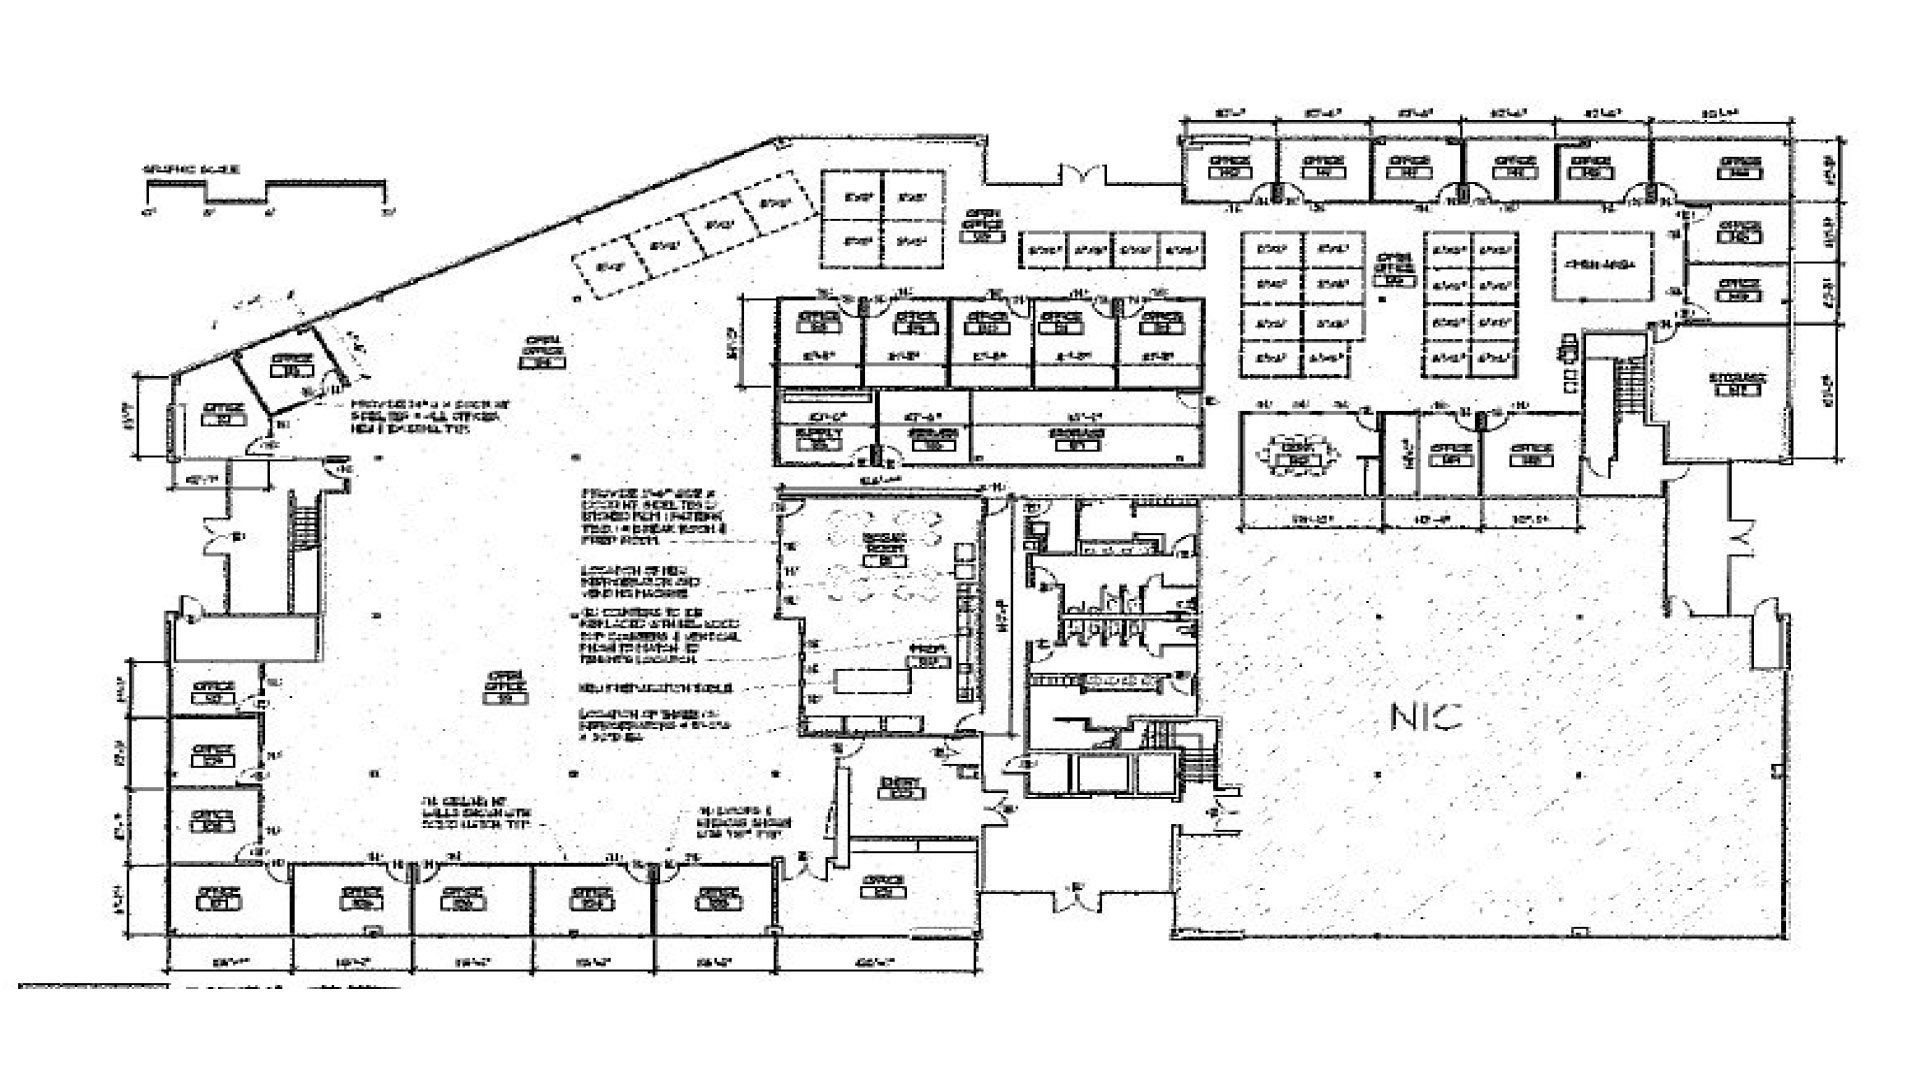 11020 White Rock Road Floorplan